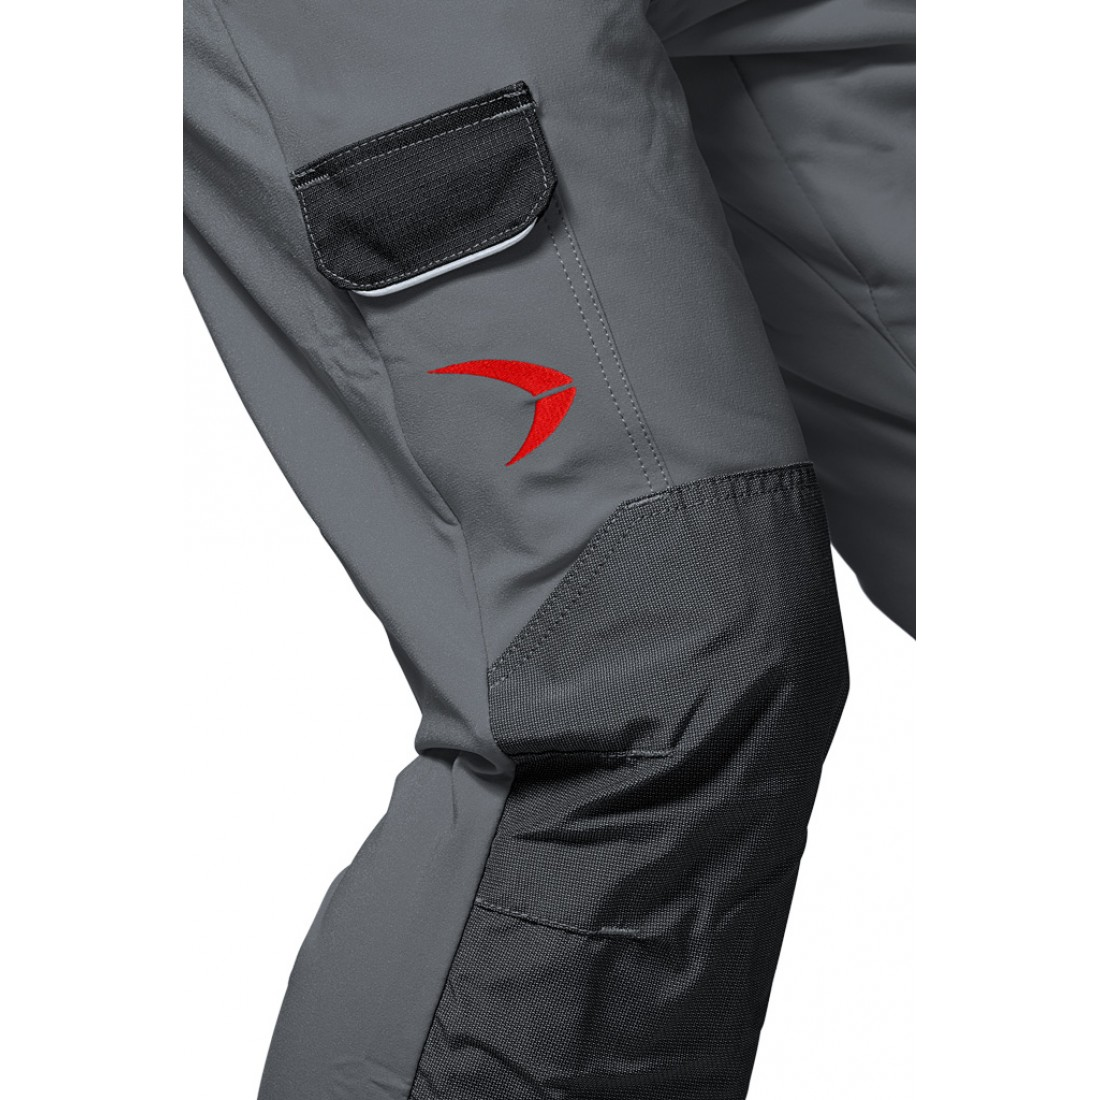 Pfanner Arborist Chainsaw Protection Trousers Sorbus